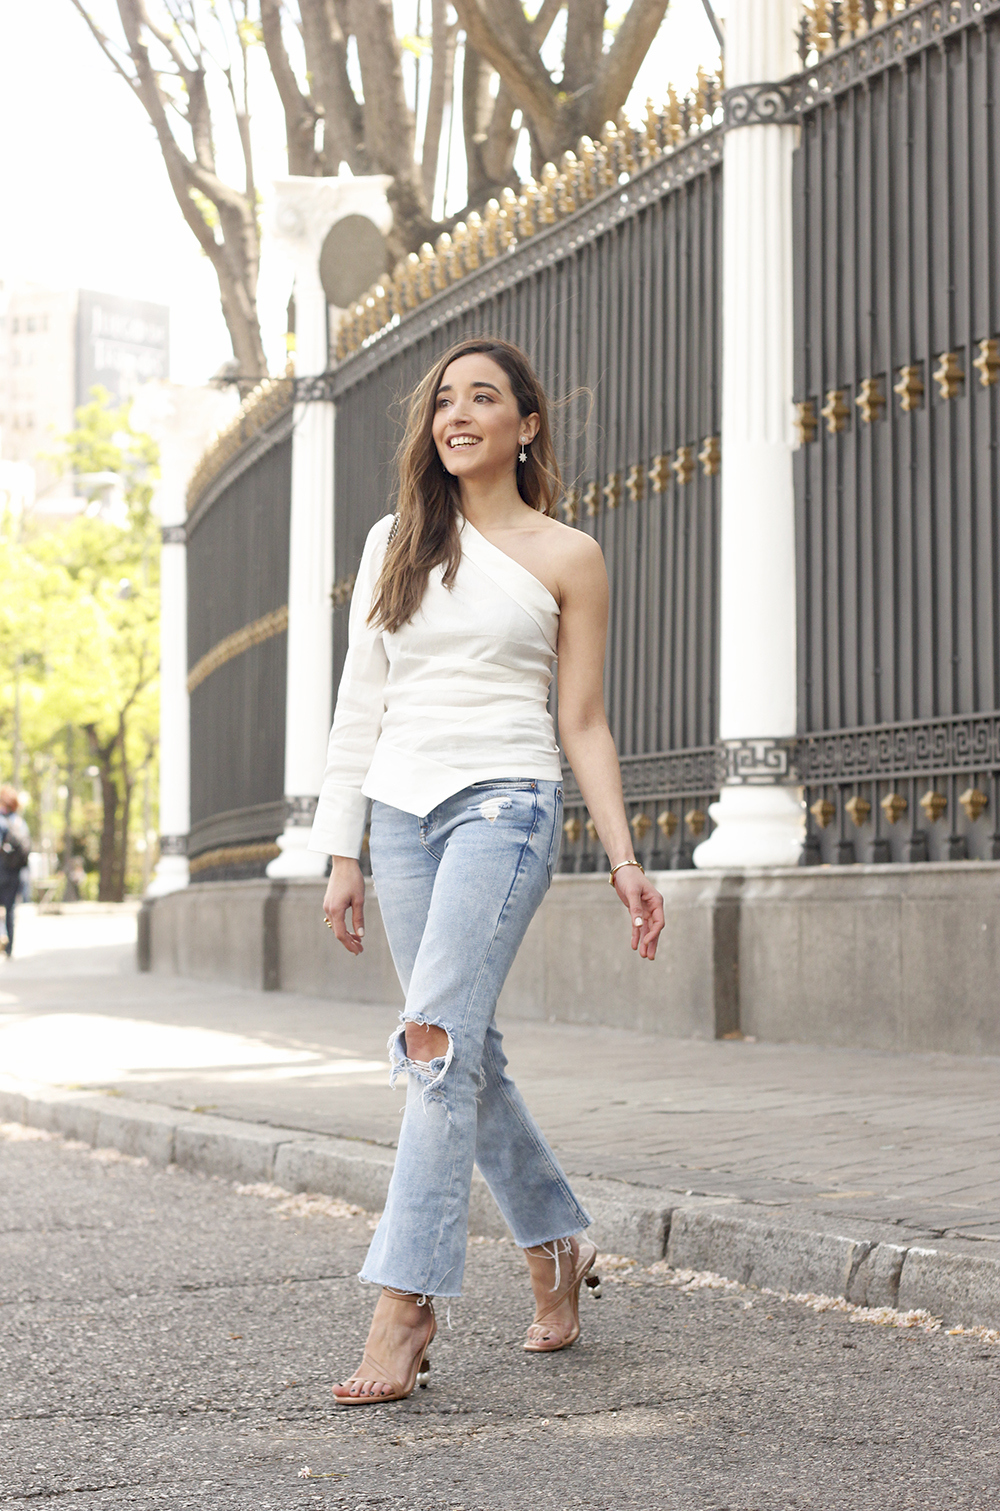 White Asymmetrical Linen Top jeans gucci bag street style outfit 201910